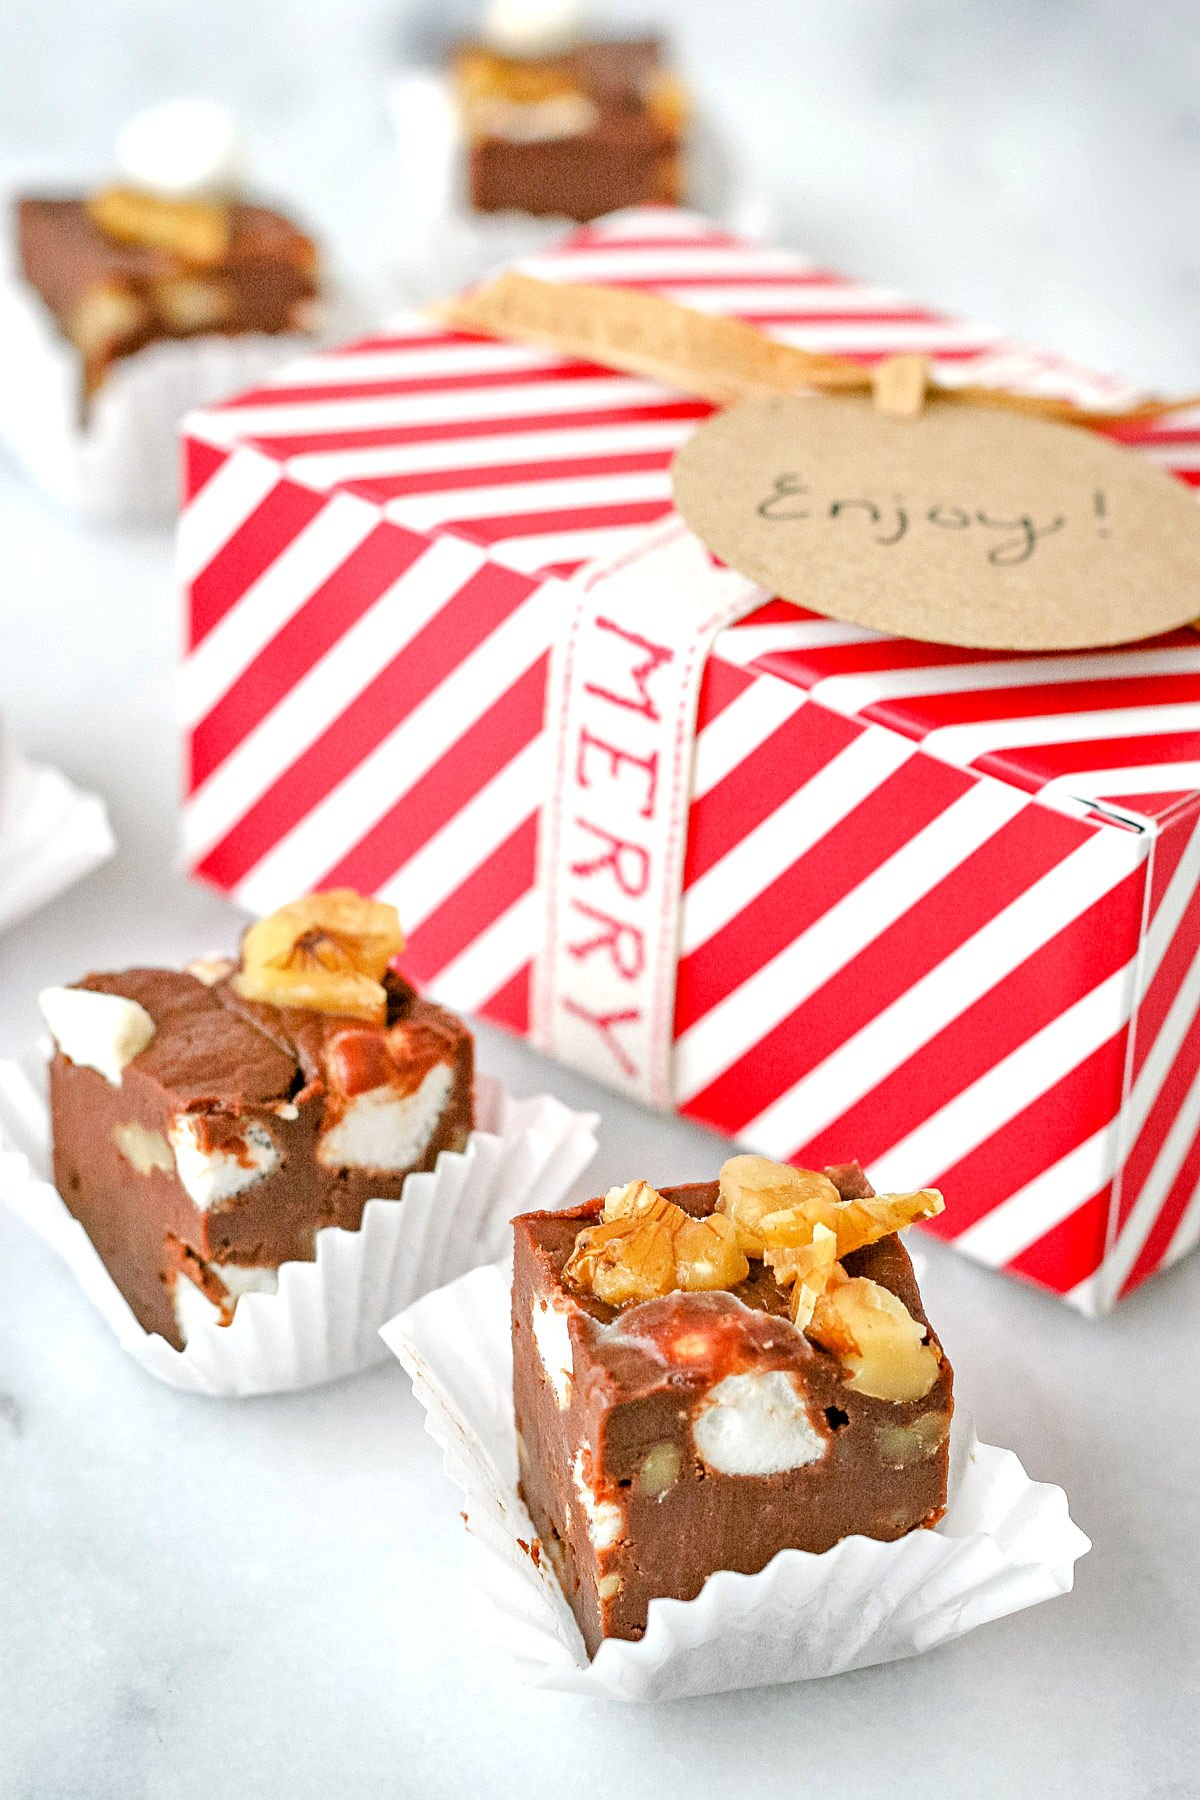 rocky road fudge pieces in white liners with red and white striped box in background